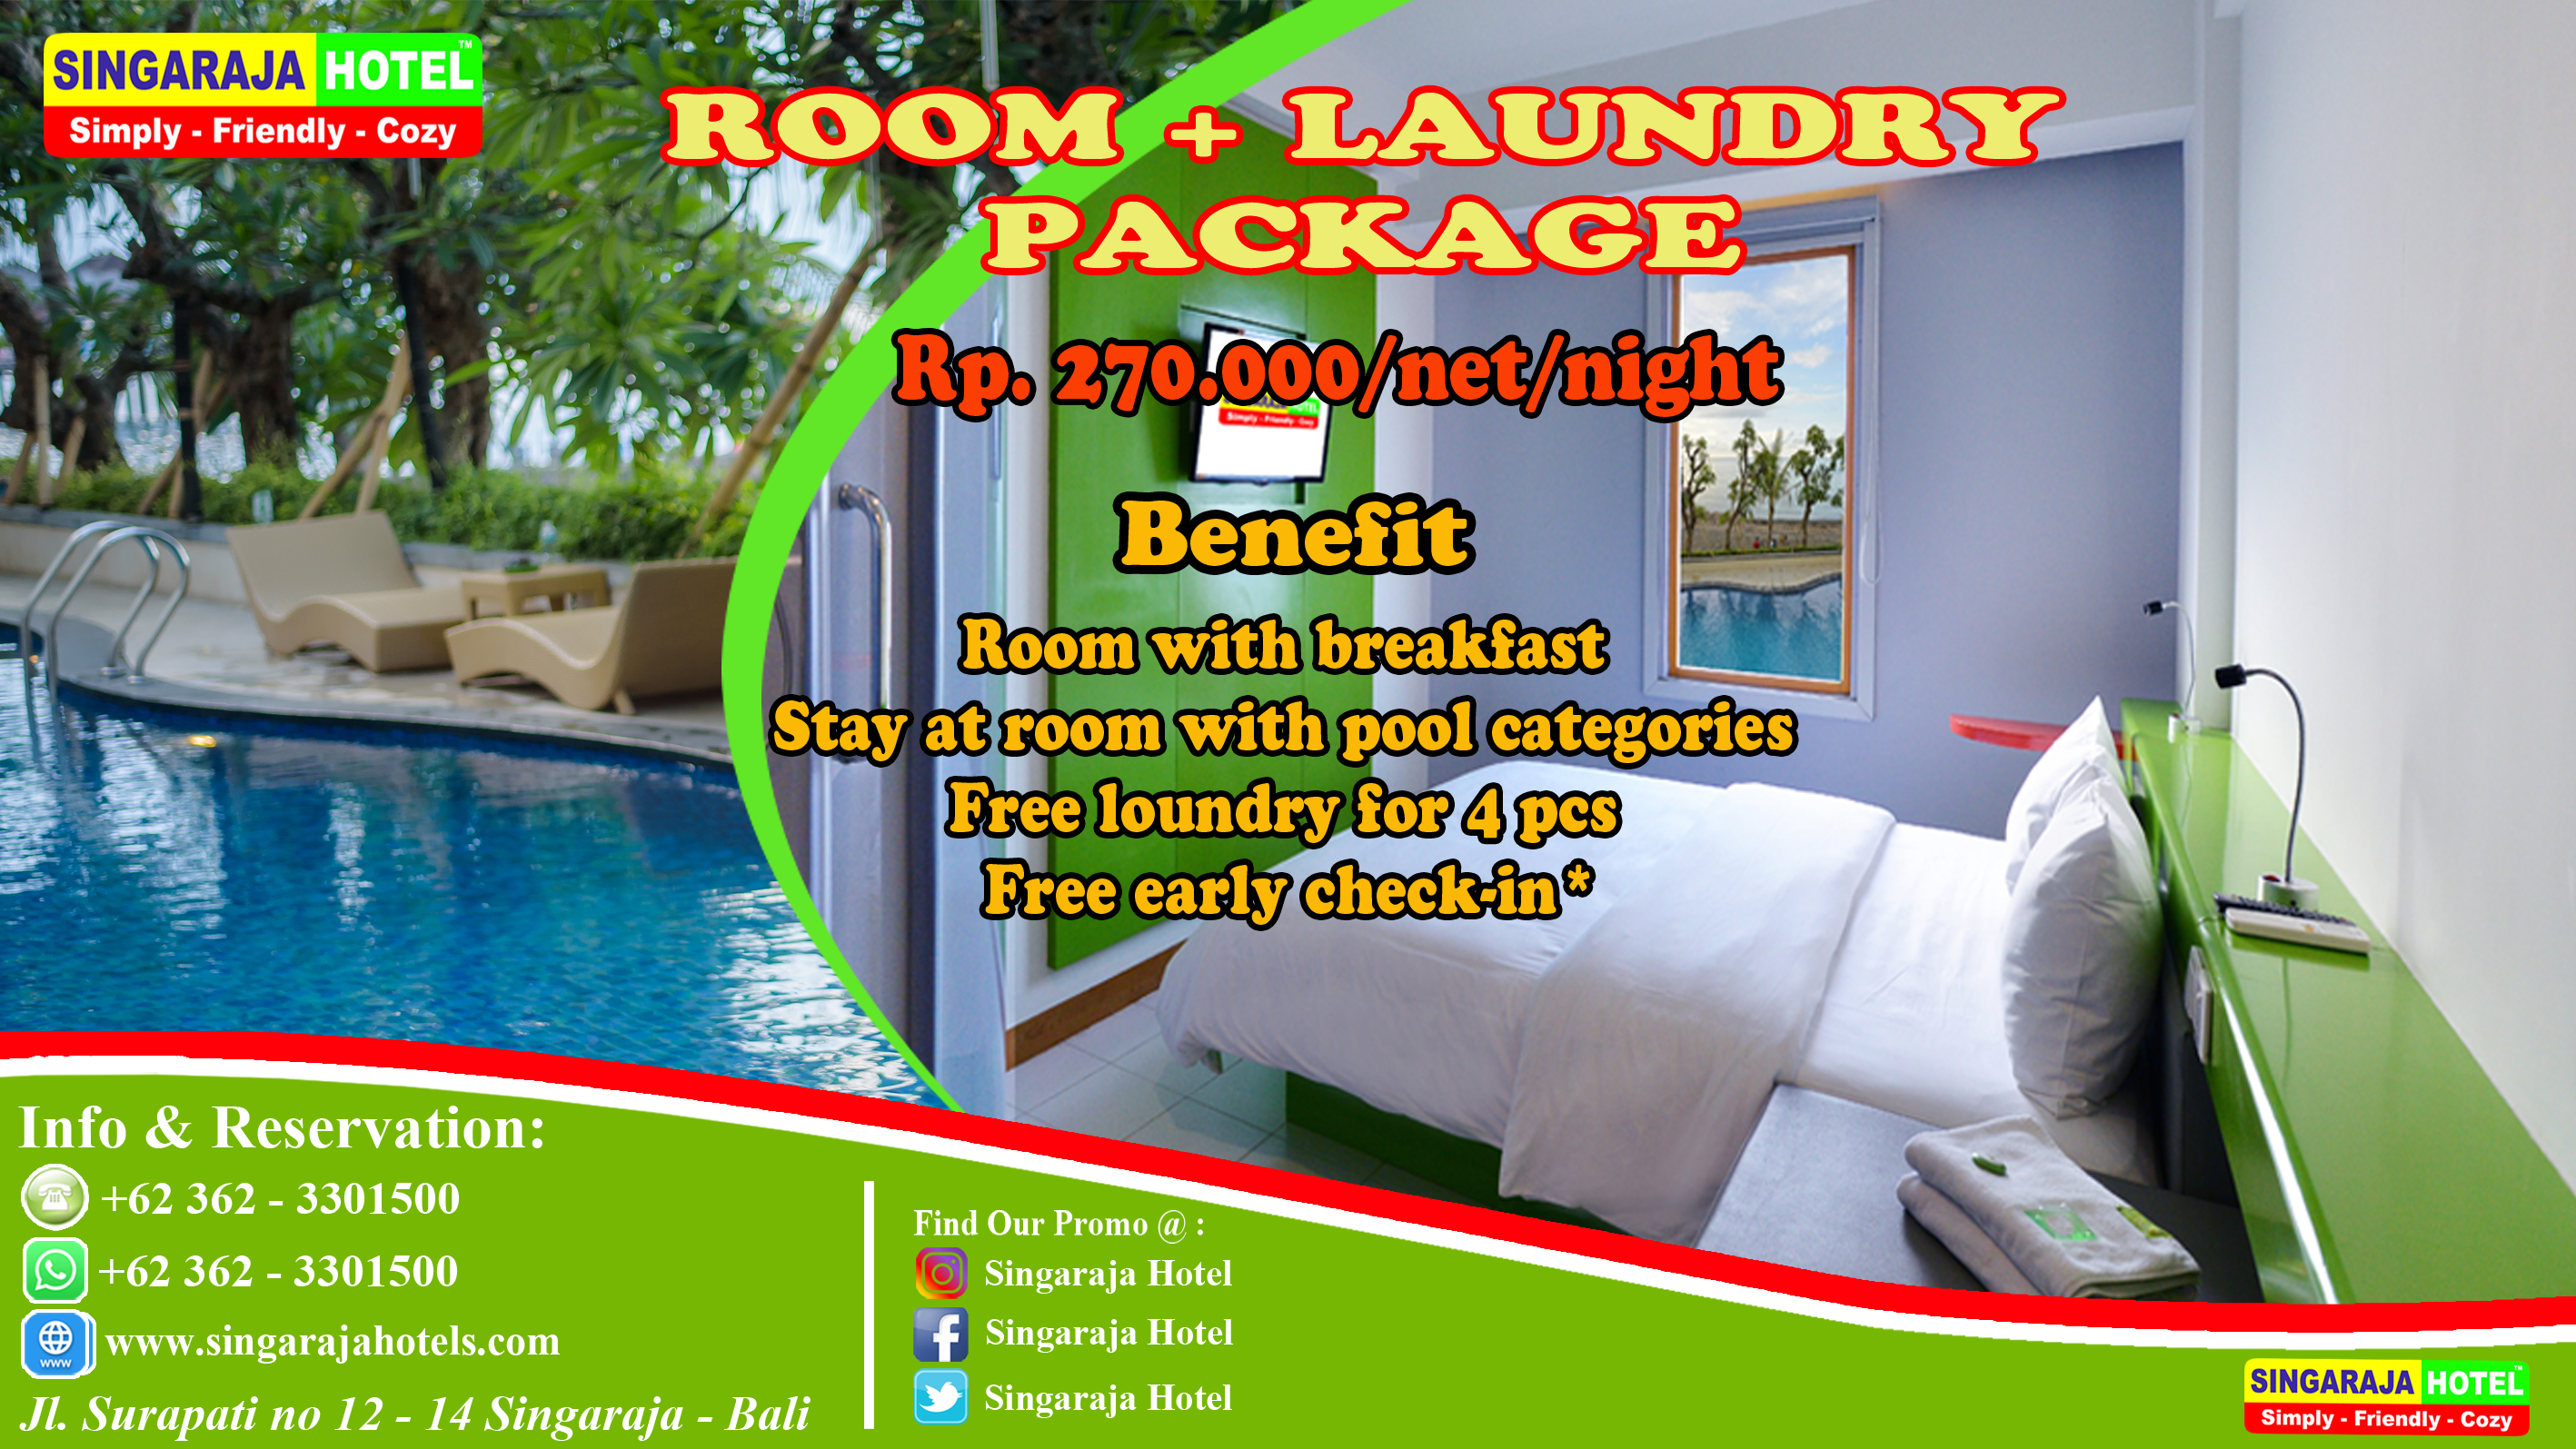 ROOM + LAUNDRY PACKAGE